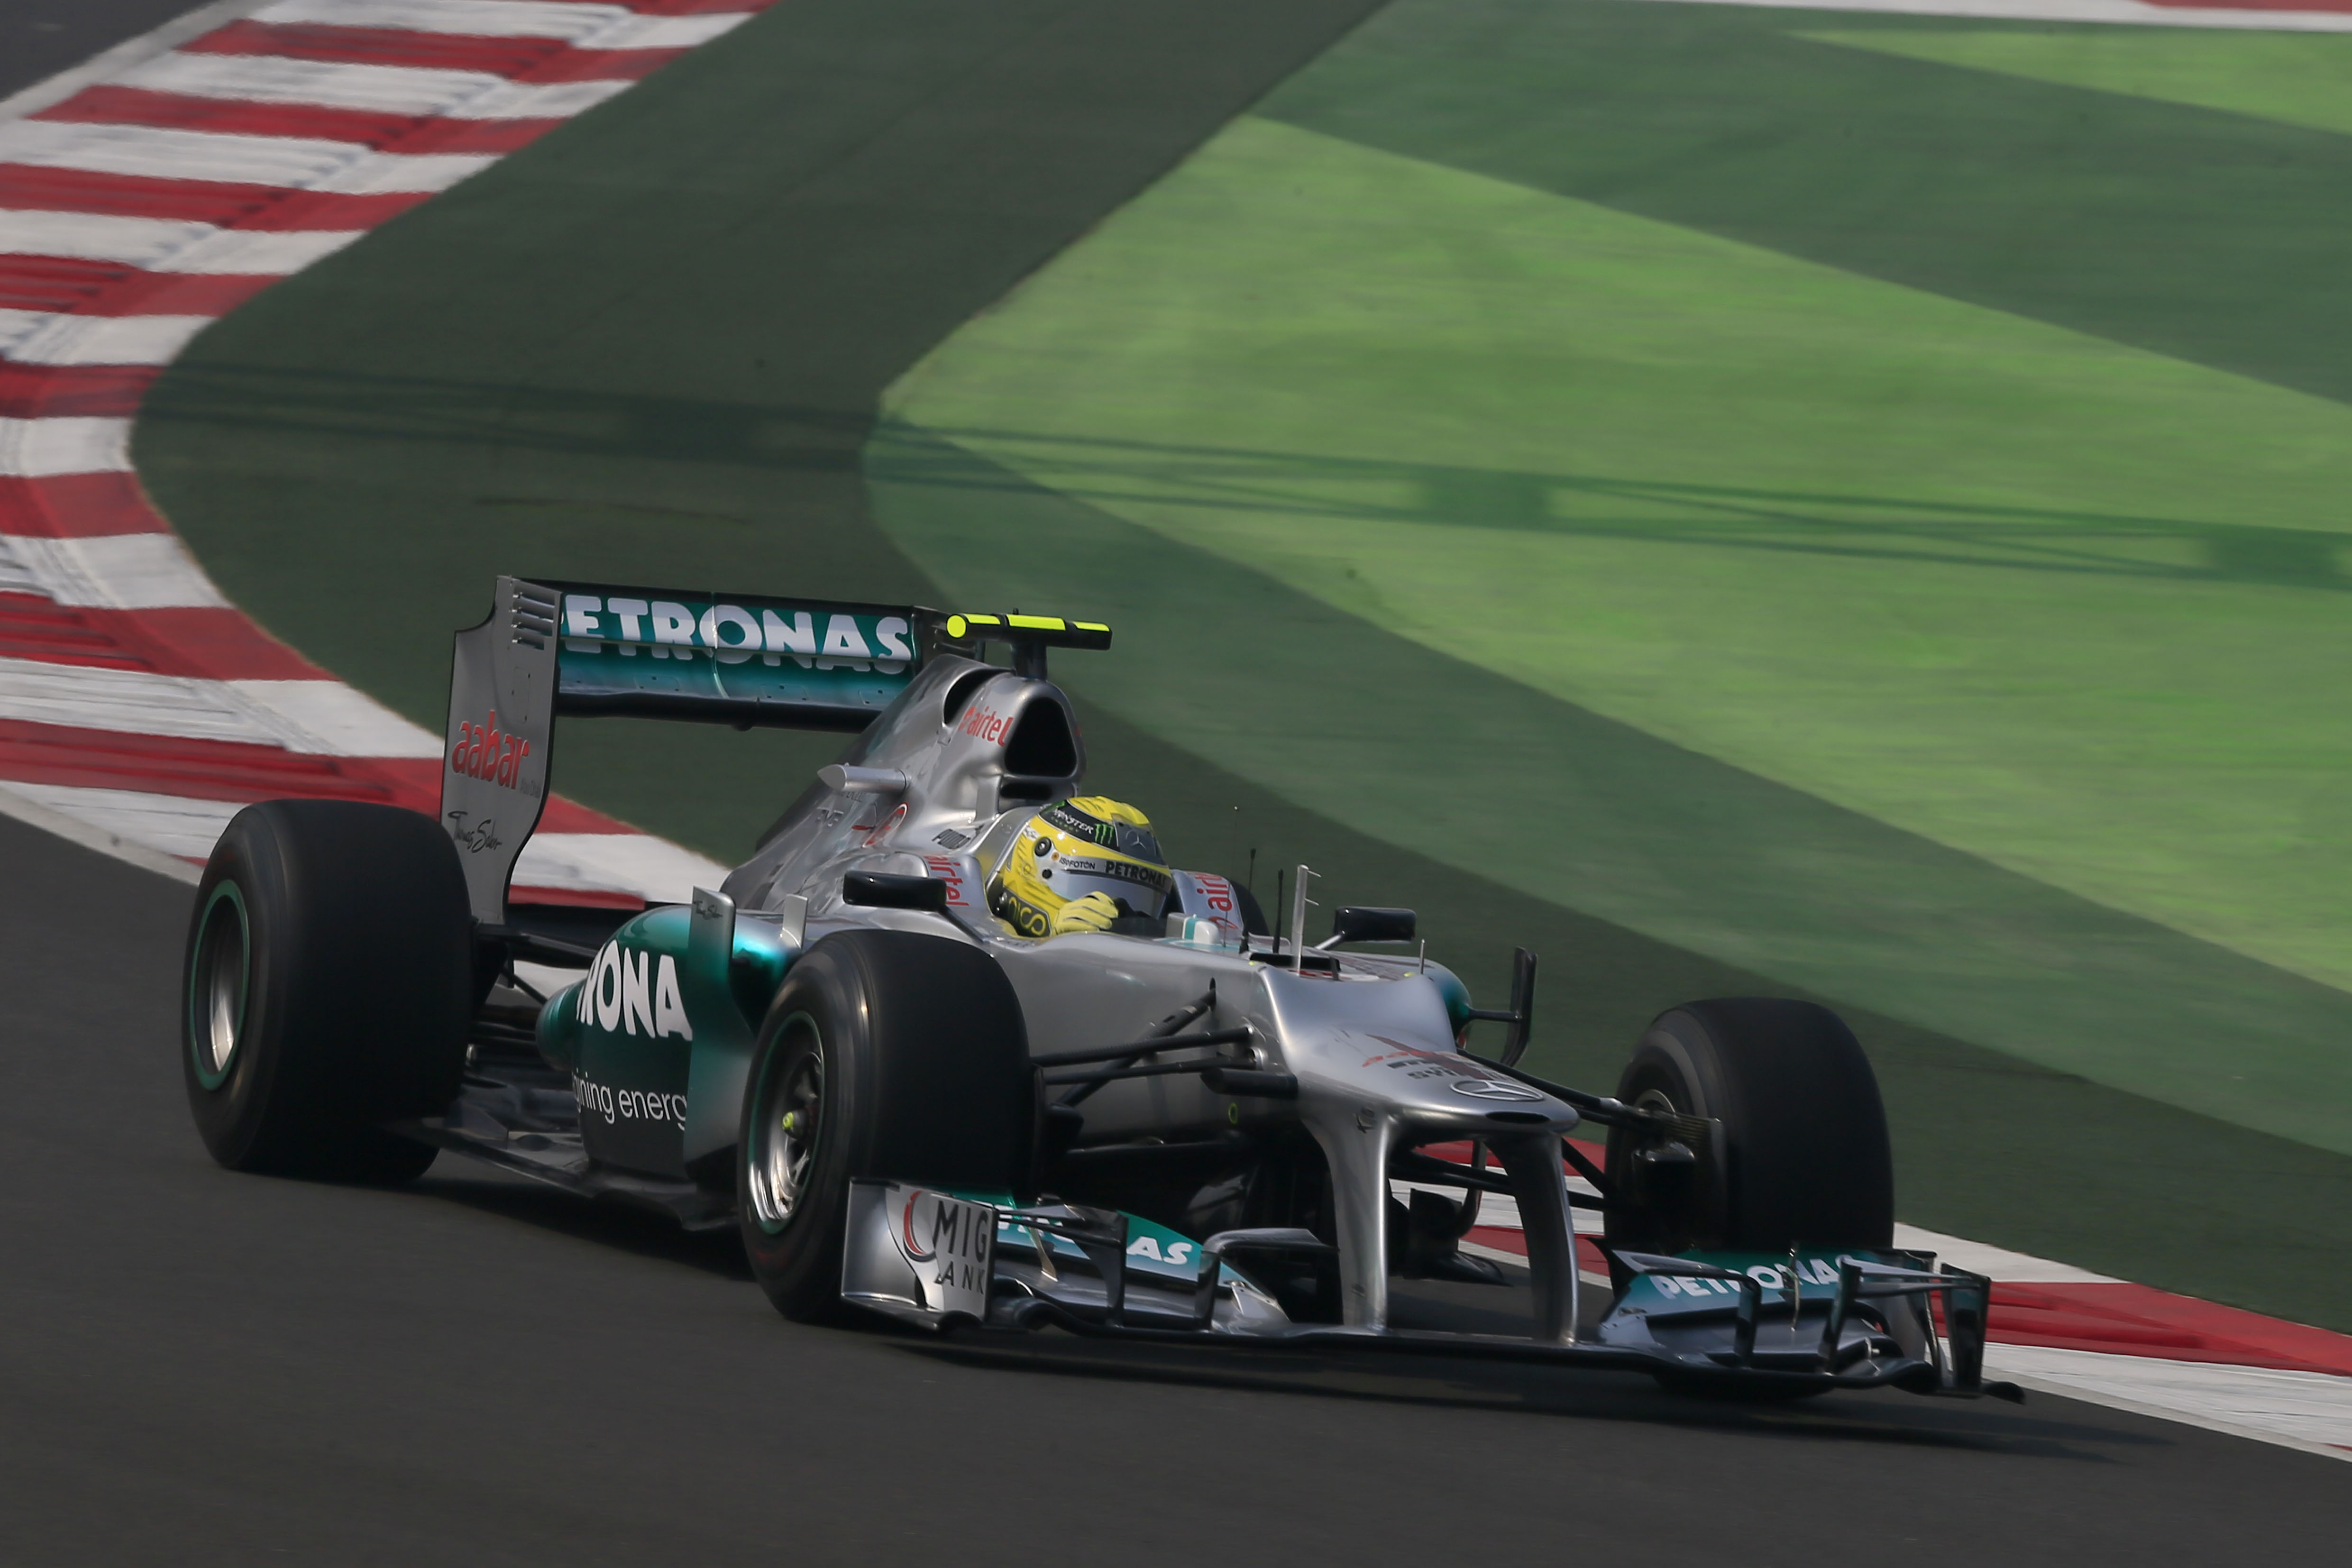 : FIA Formula One World Championship 2012, Grand Prix of India